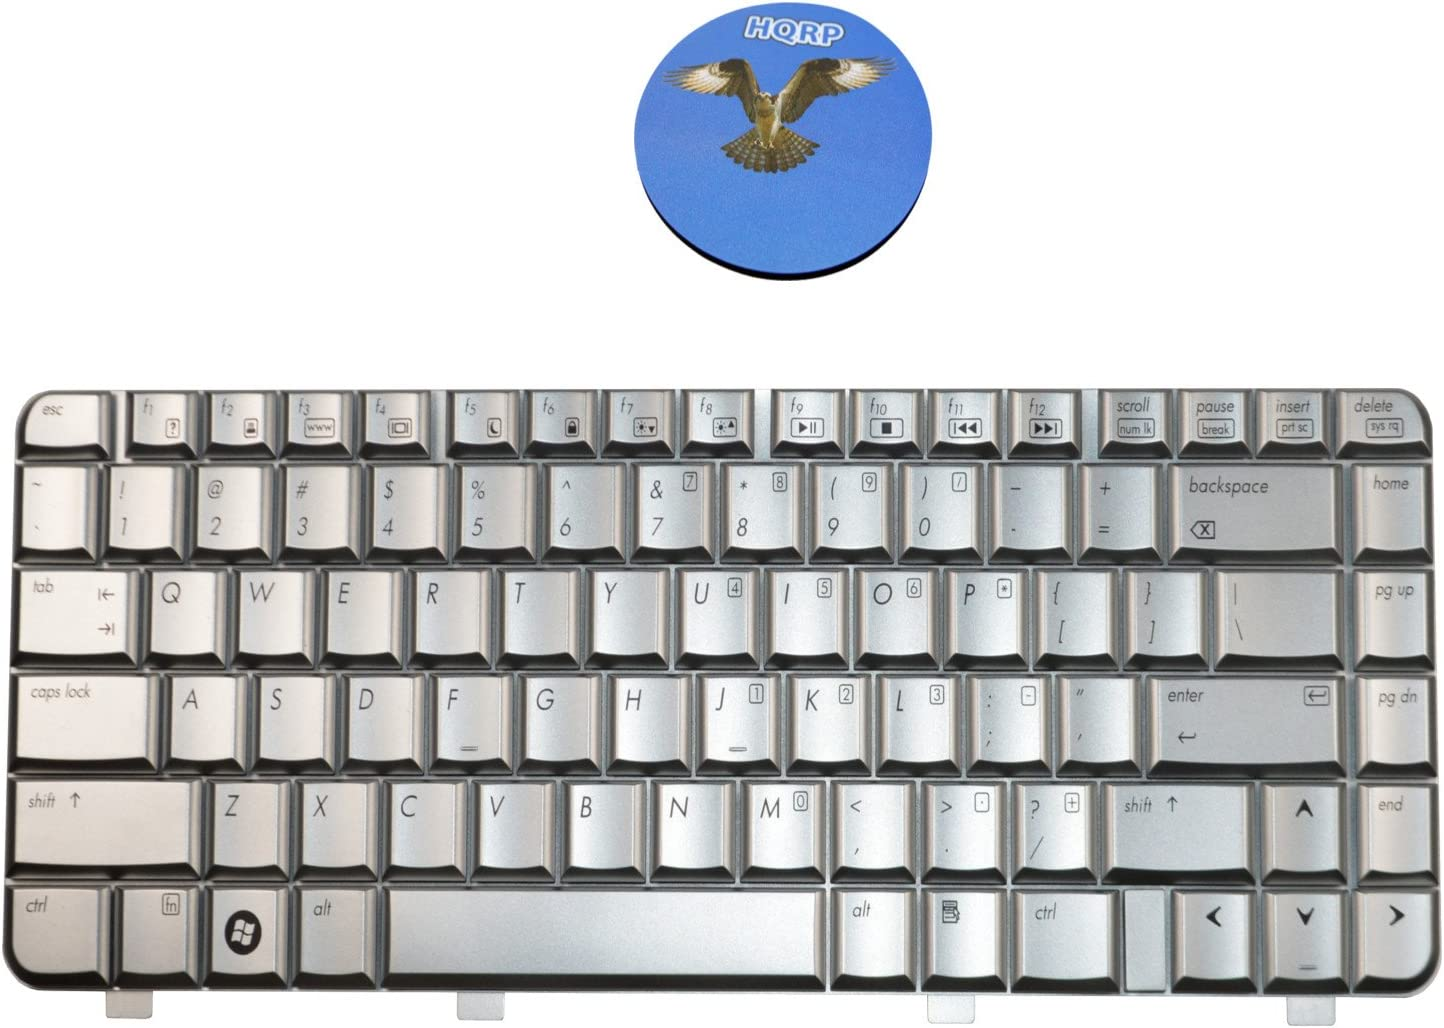 HQRP Keyboard for HP Pavilion DV4-1125NR / DV4-1135NR Laptop/Notebook Replacement Plus HQRP Coaster